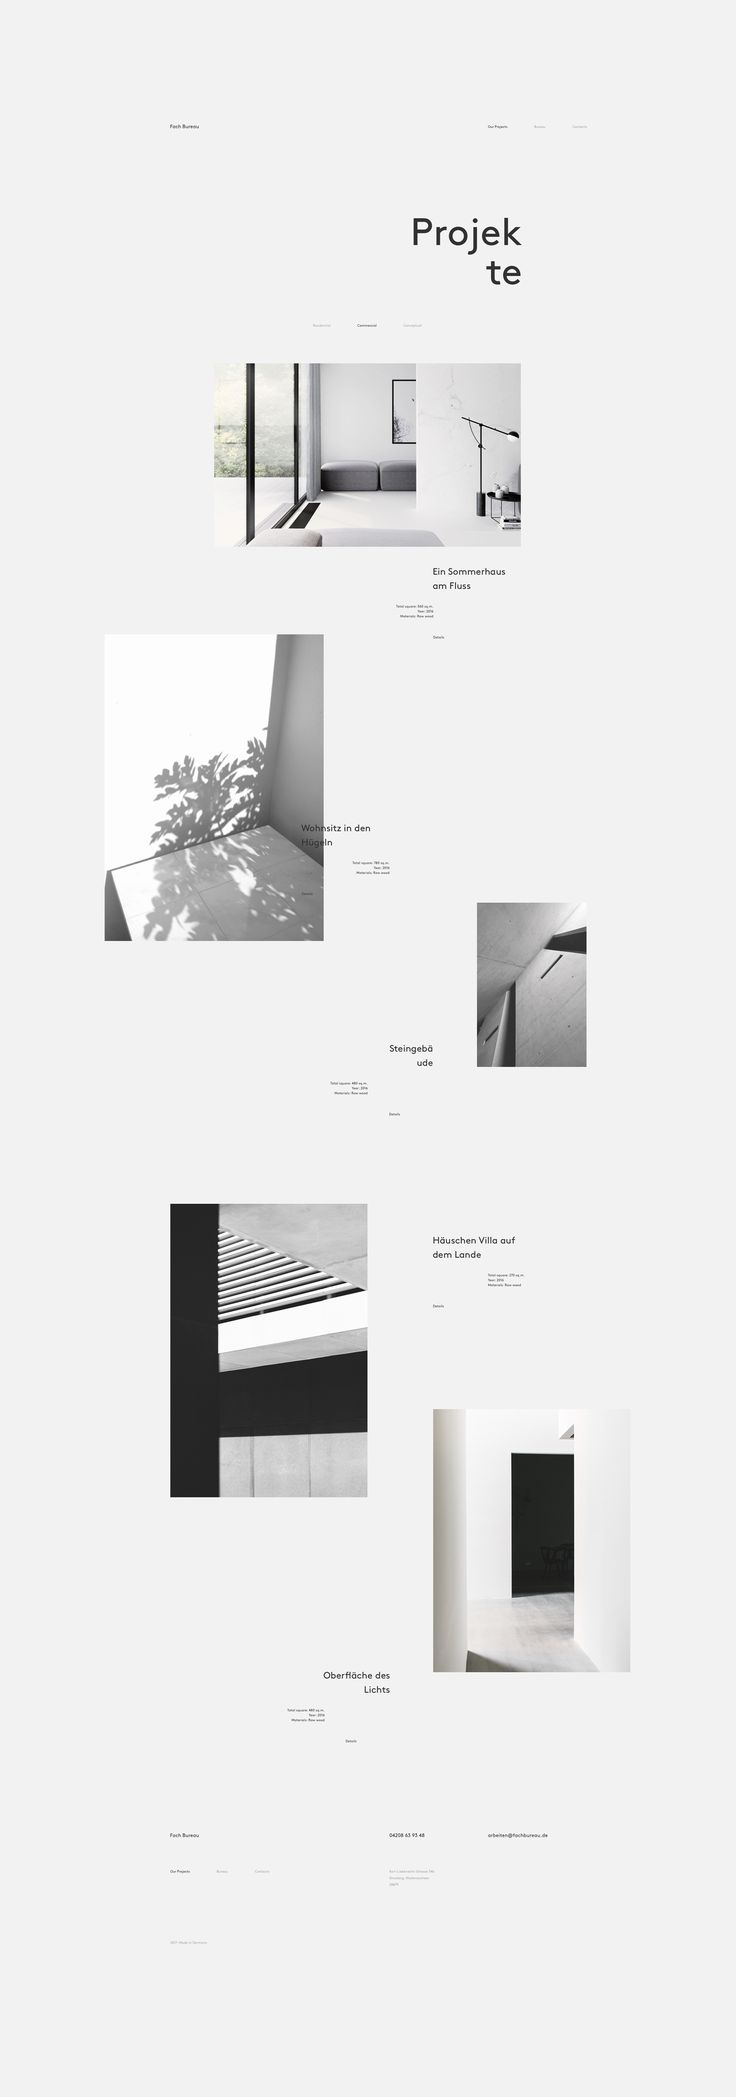 Art Direction Brand Identity Design And Website Concept For Fach Bureau Small Architecture Interior Studio Based In Germany